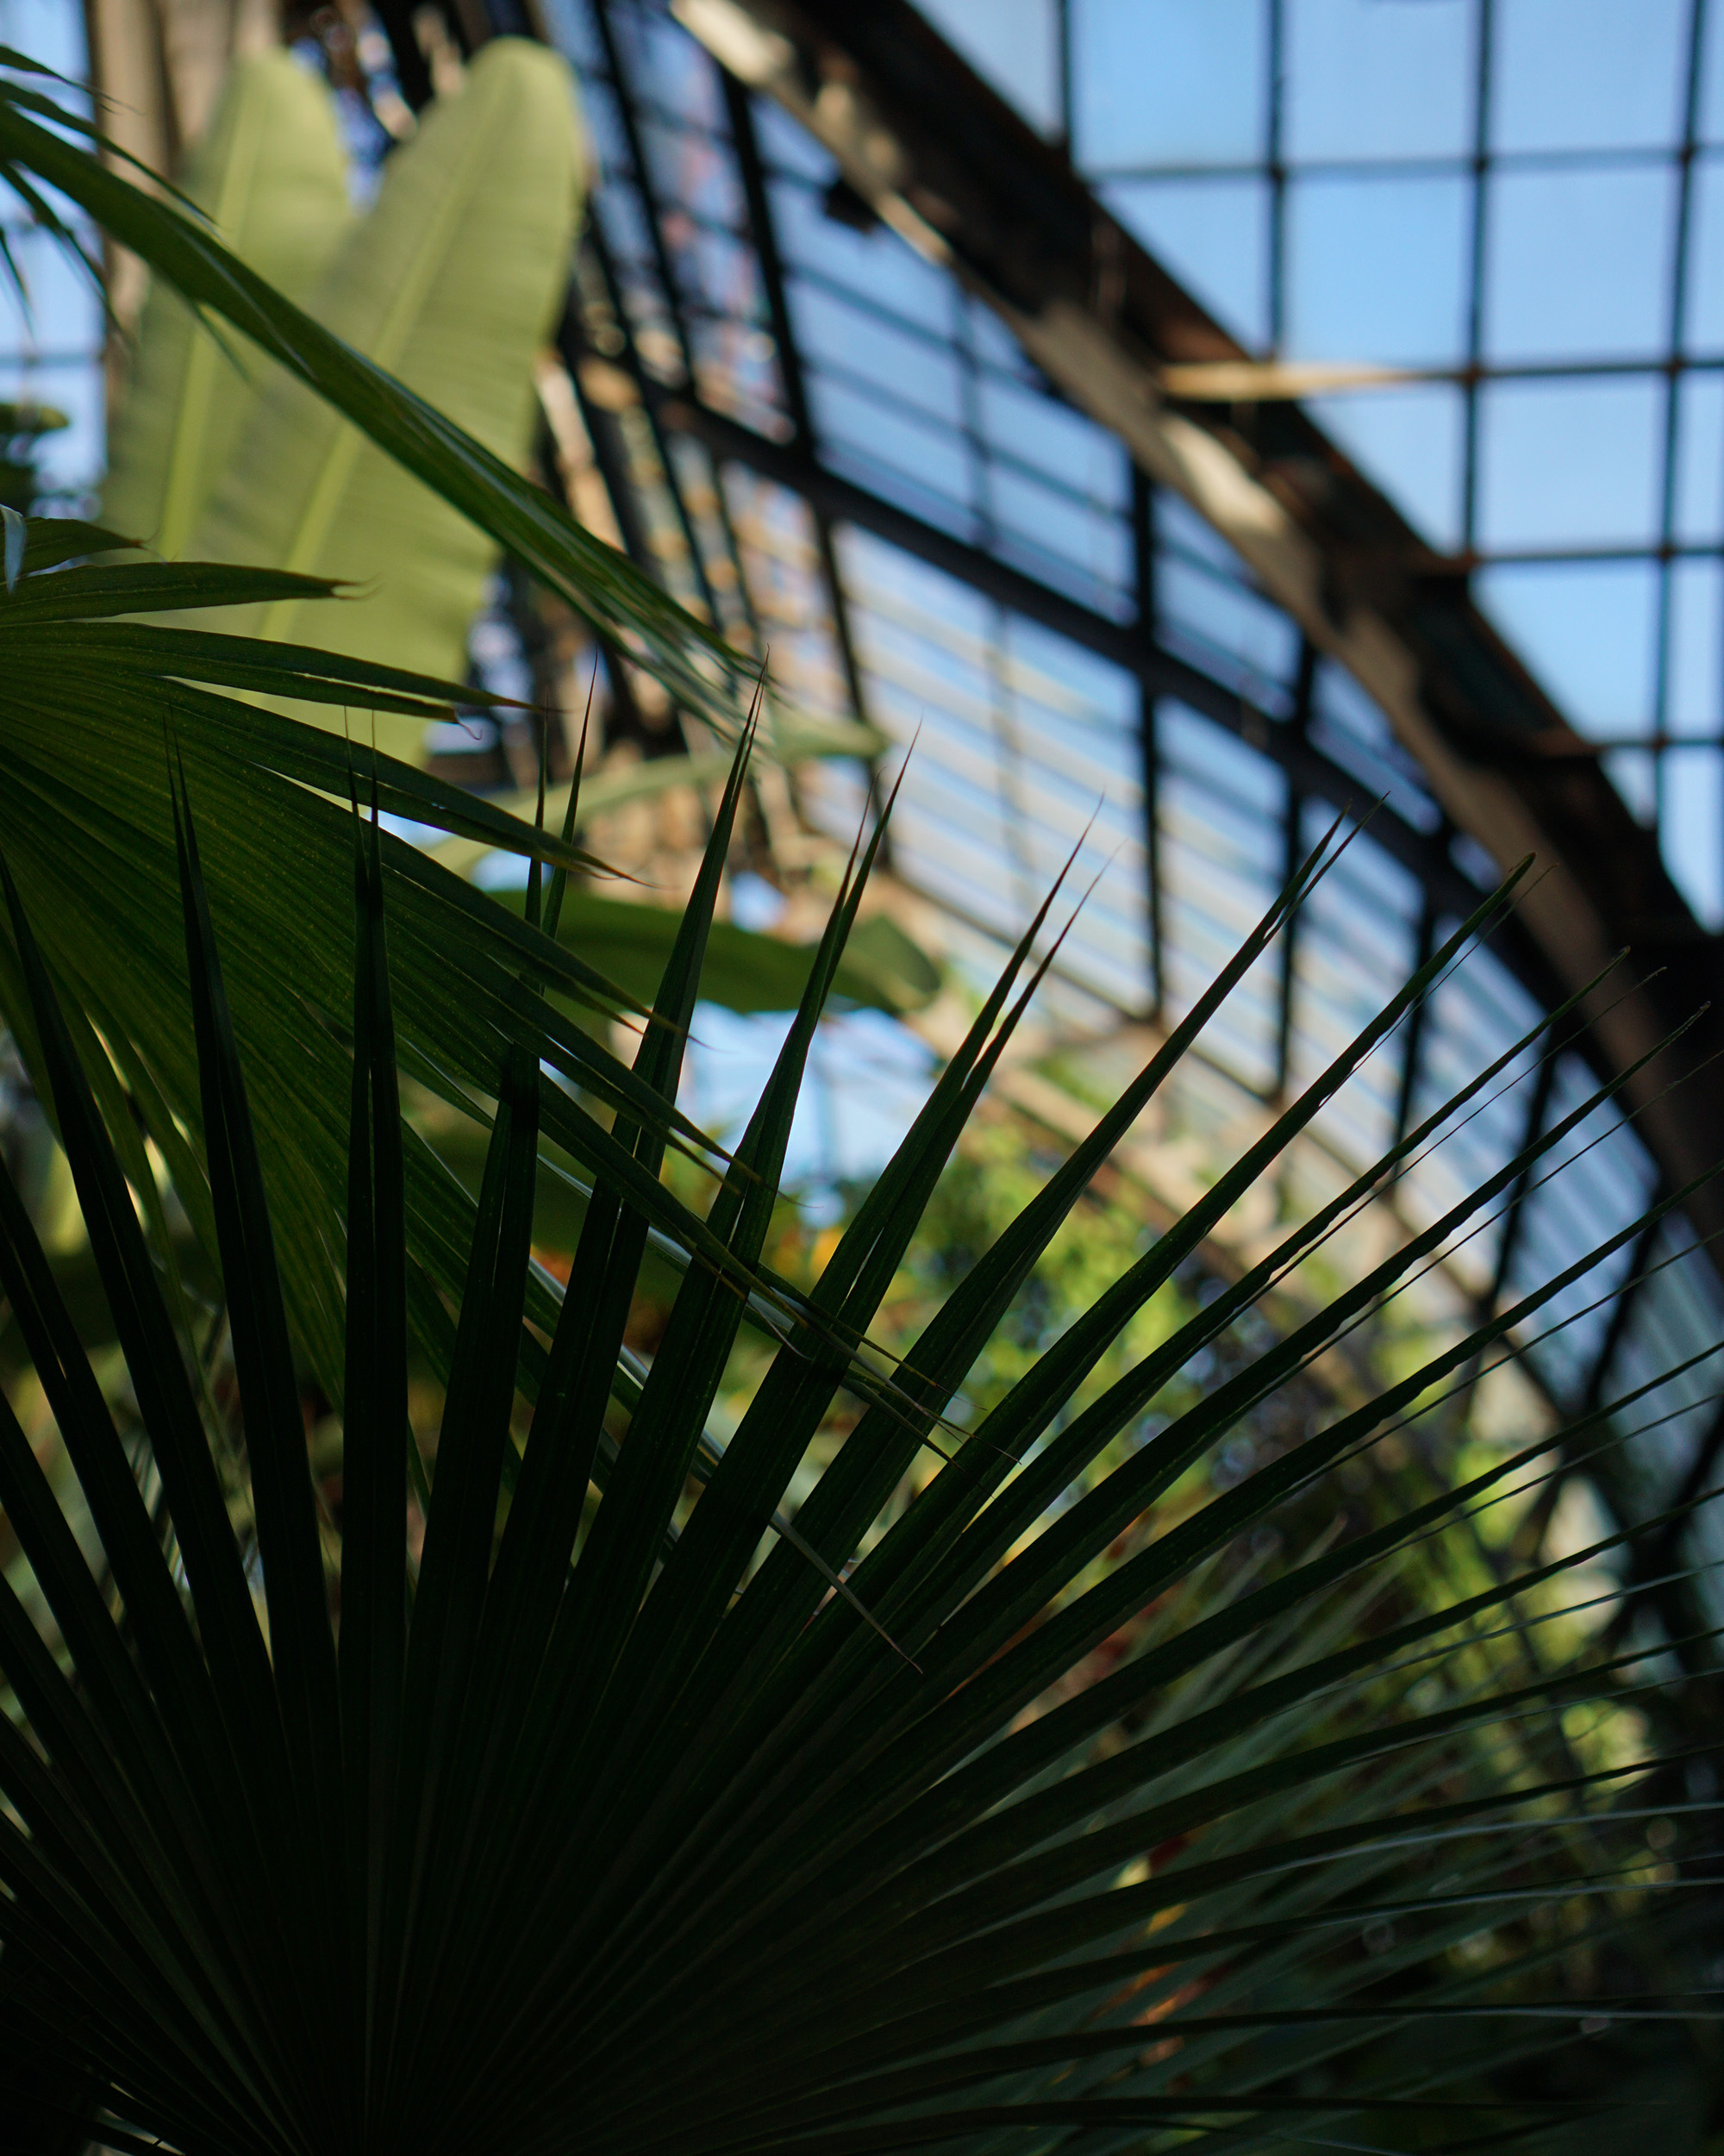 Palms in the Lincoln Park Conservatory, Chicago / Darker than Green